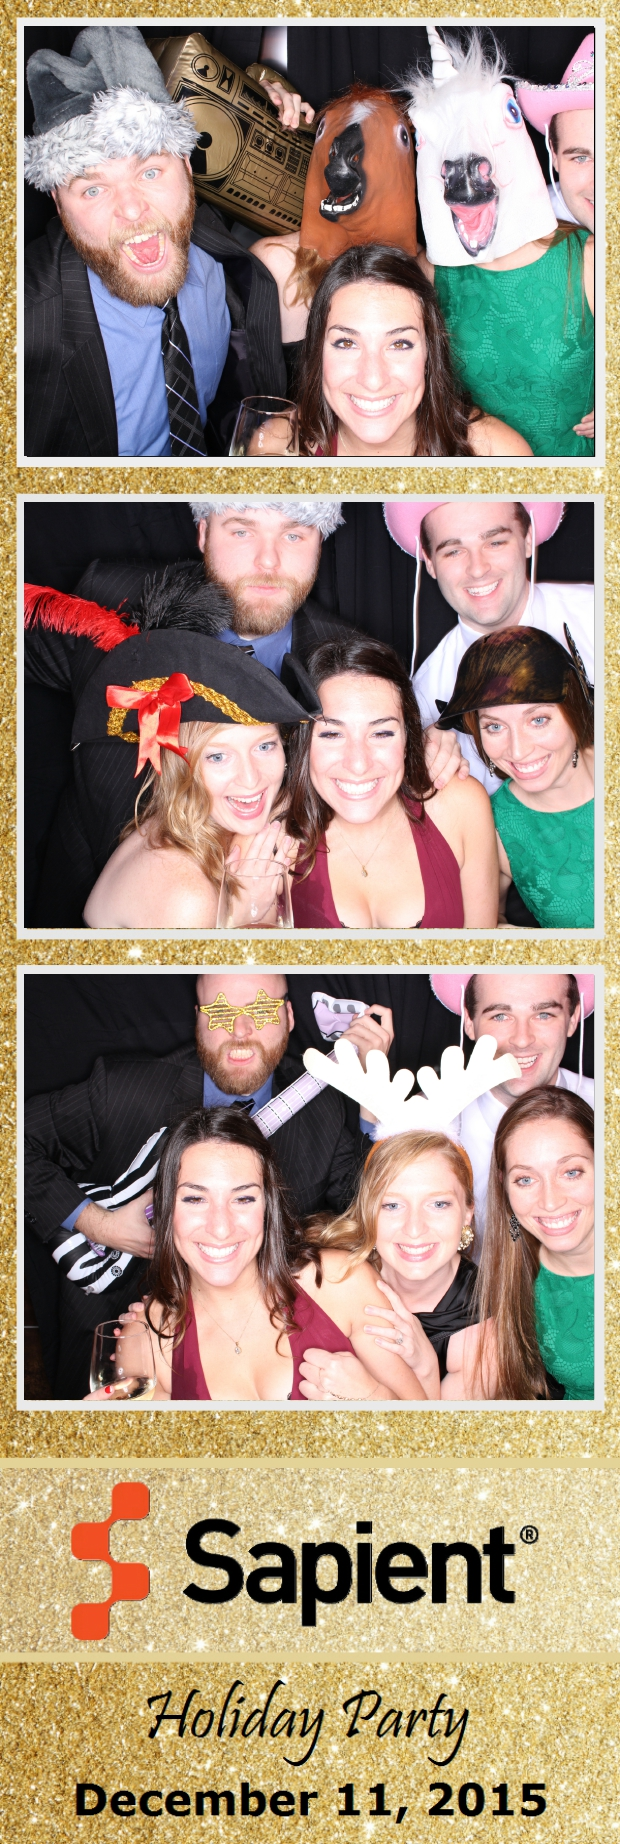 Guest House Events Photo Booth Sapient Holiday Party (38).jpg